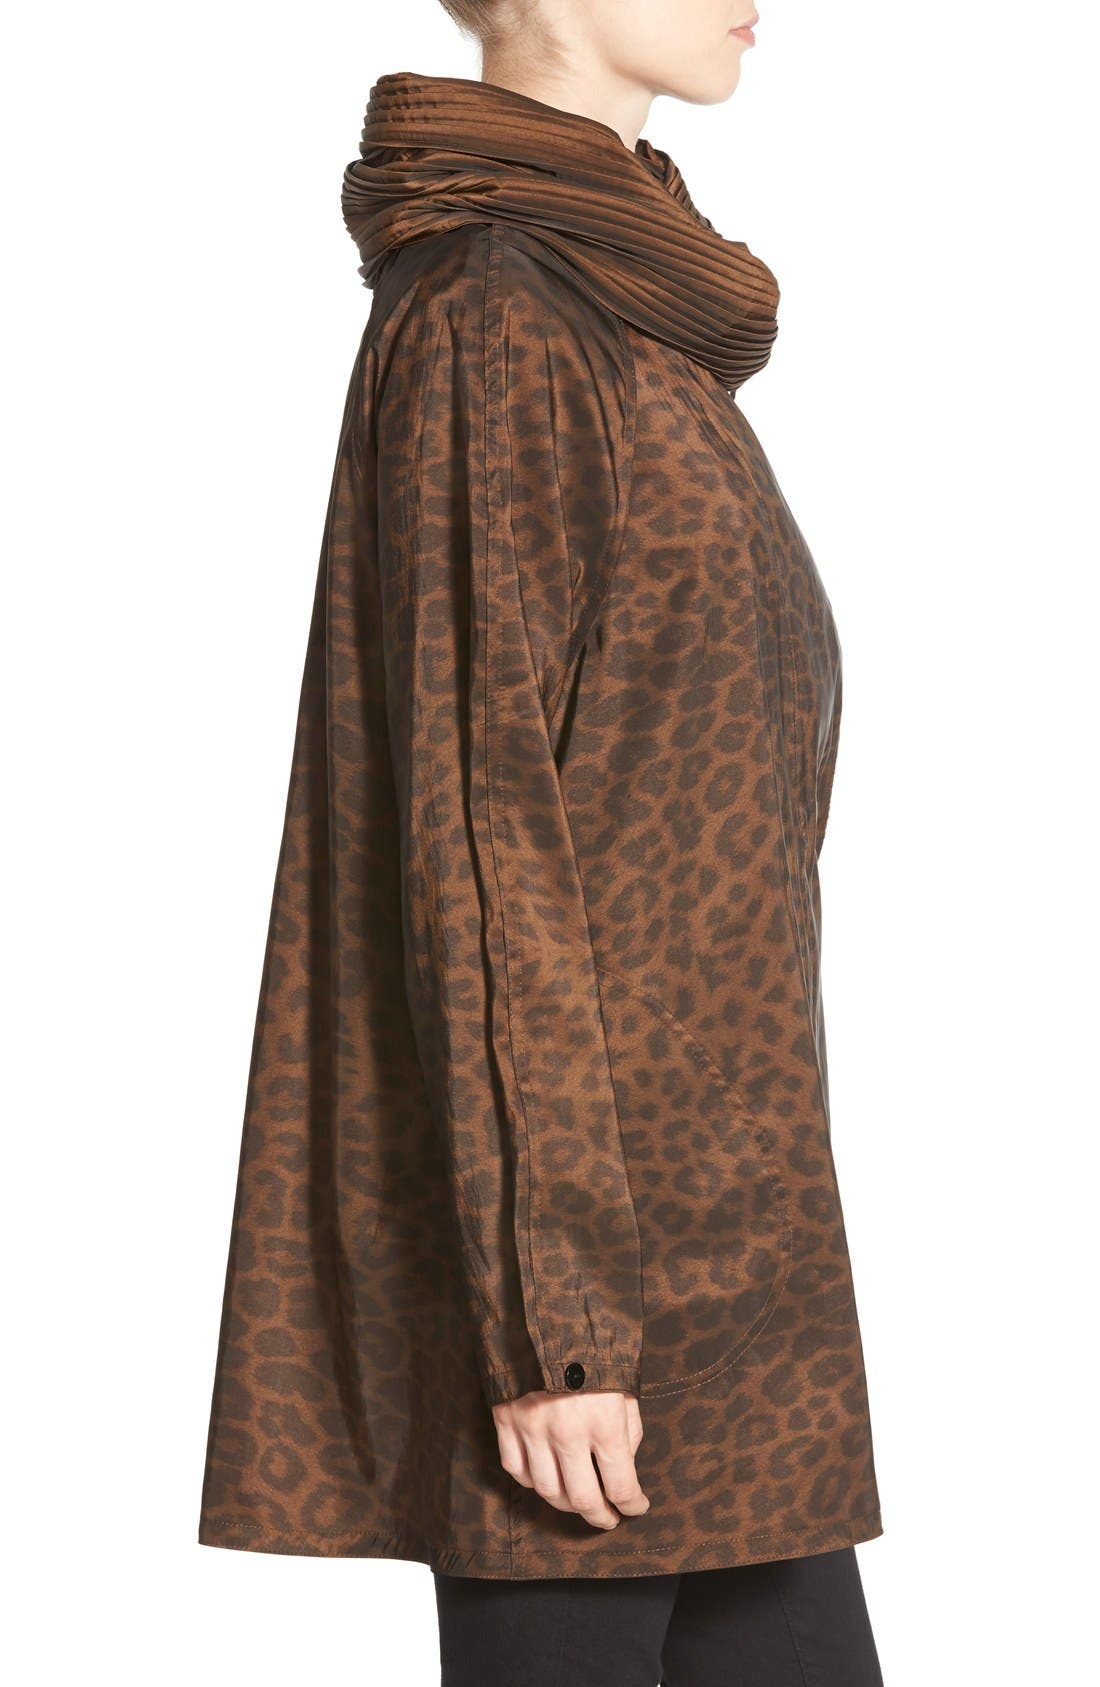 'Mini Donatella Leopard' Reversible Pleat Hood Packable Travel Coat,                             Alternate thumbnail 12, color,                             202